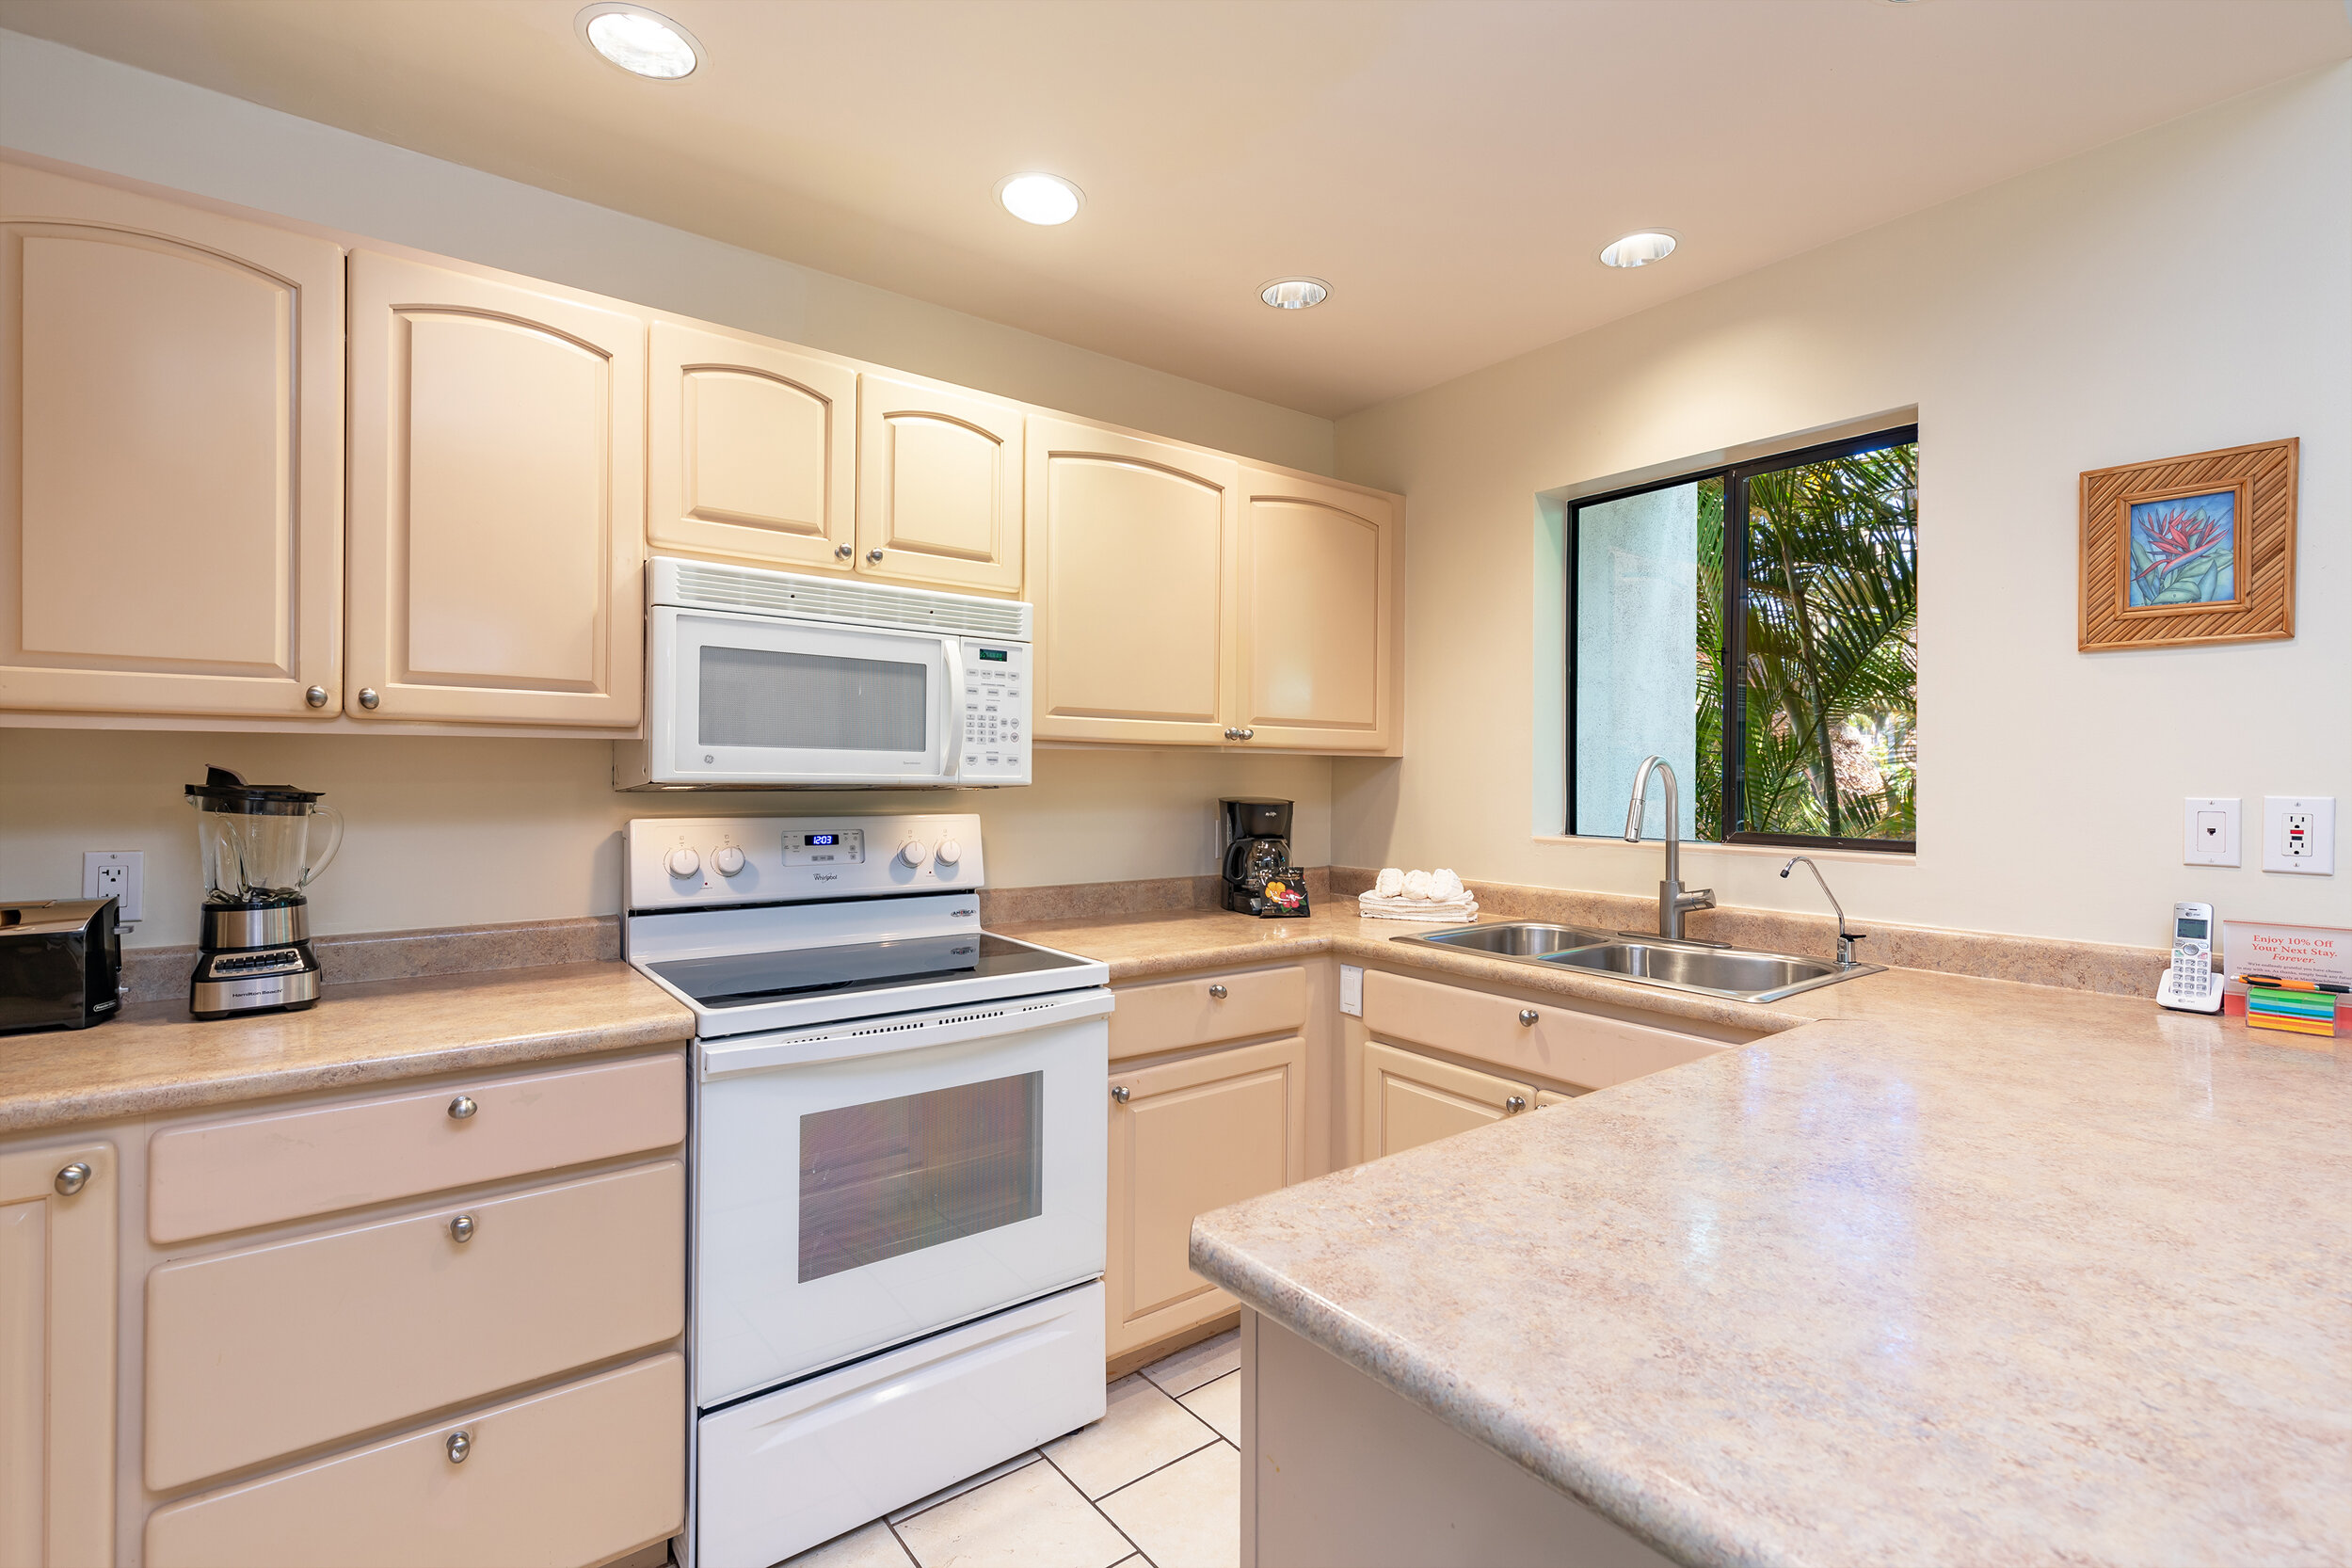 napili-gardens-maui-vacation-condos-ng1-06-kitchen.jpg